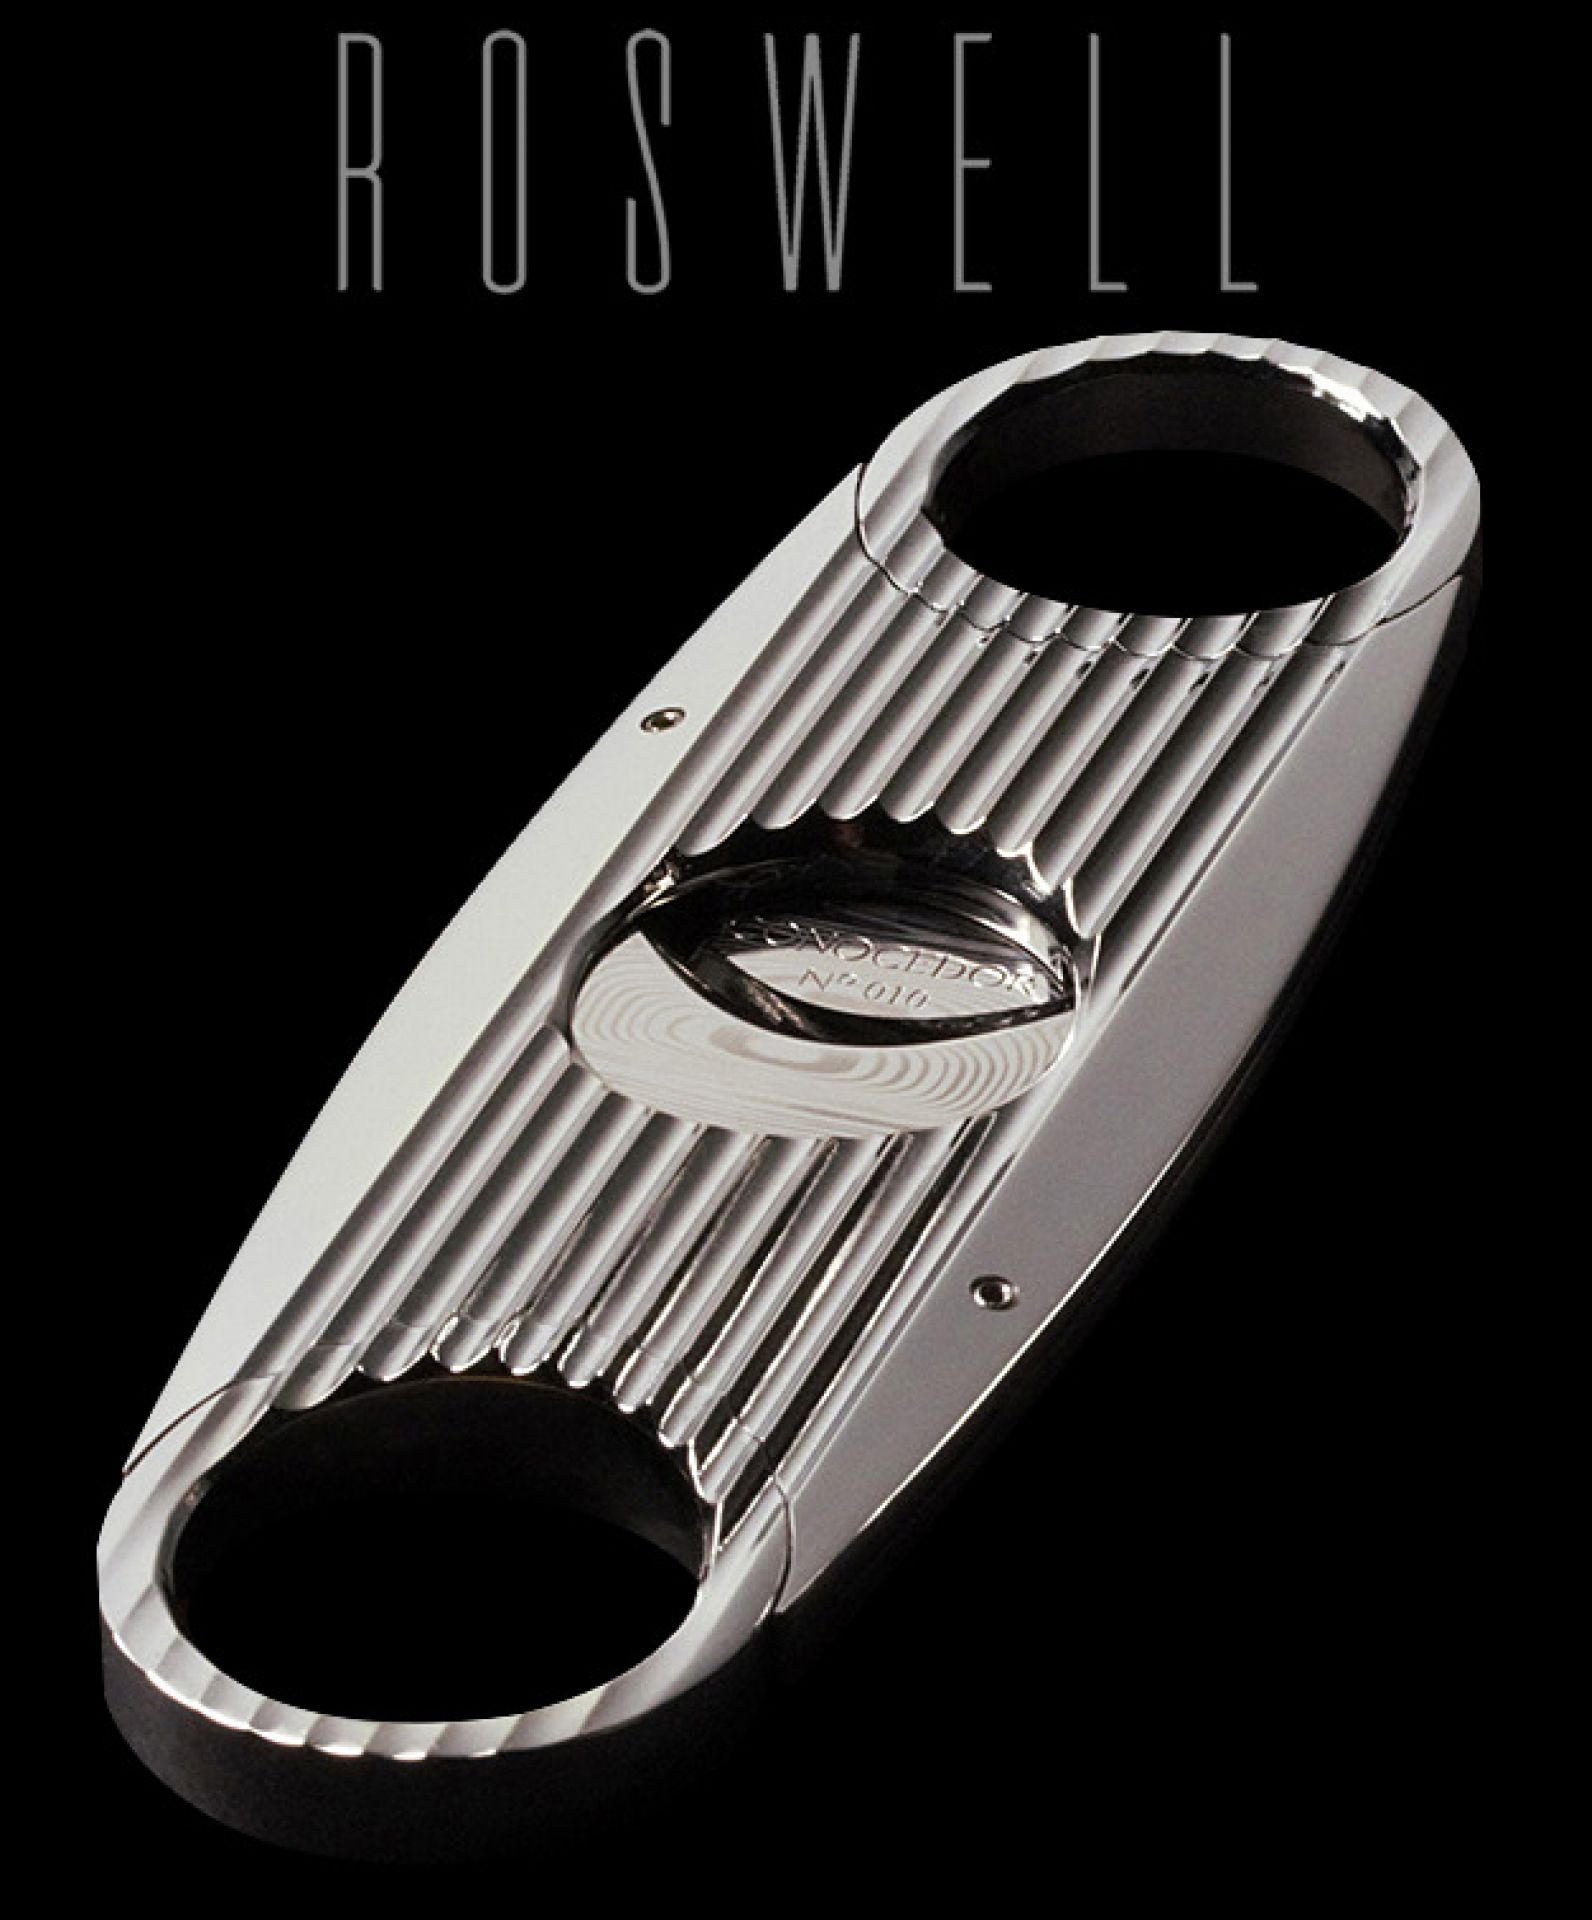 Custom Cigar Cutter - Roswell by Conocedor Luxury Cigar Accessories